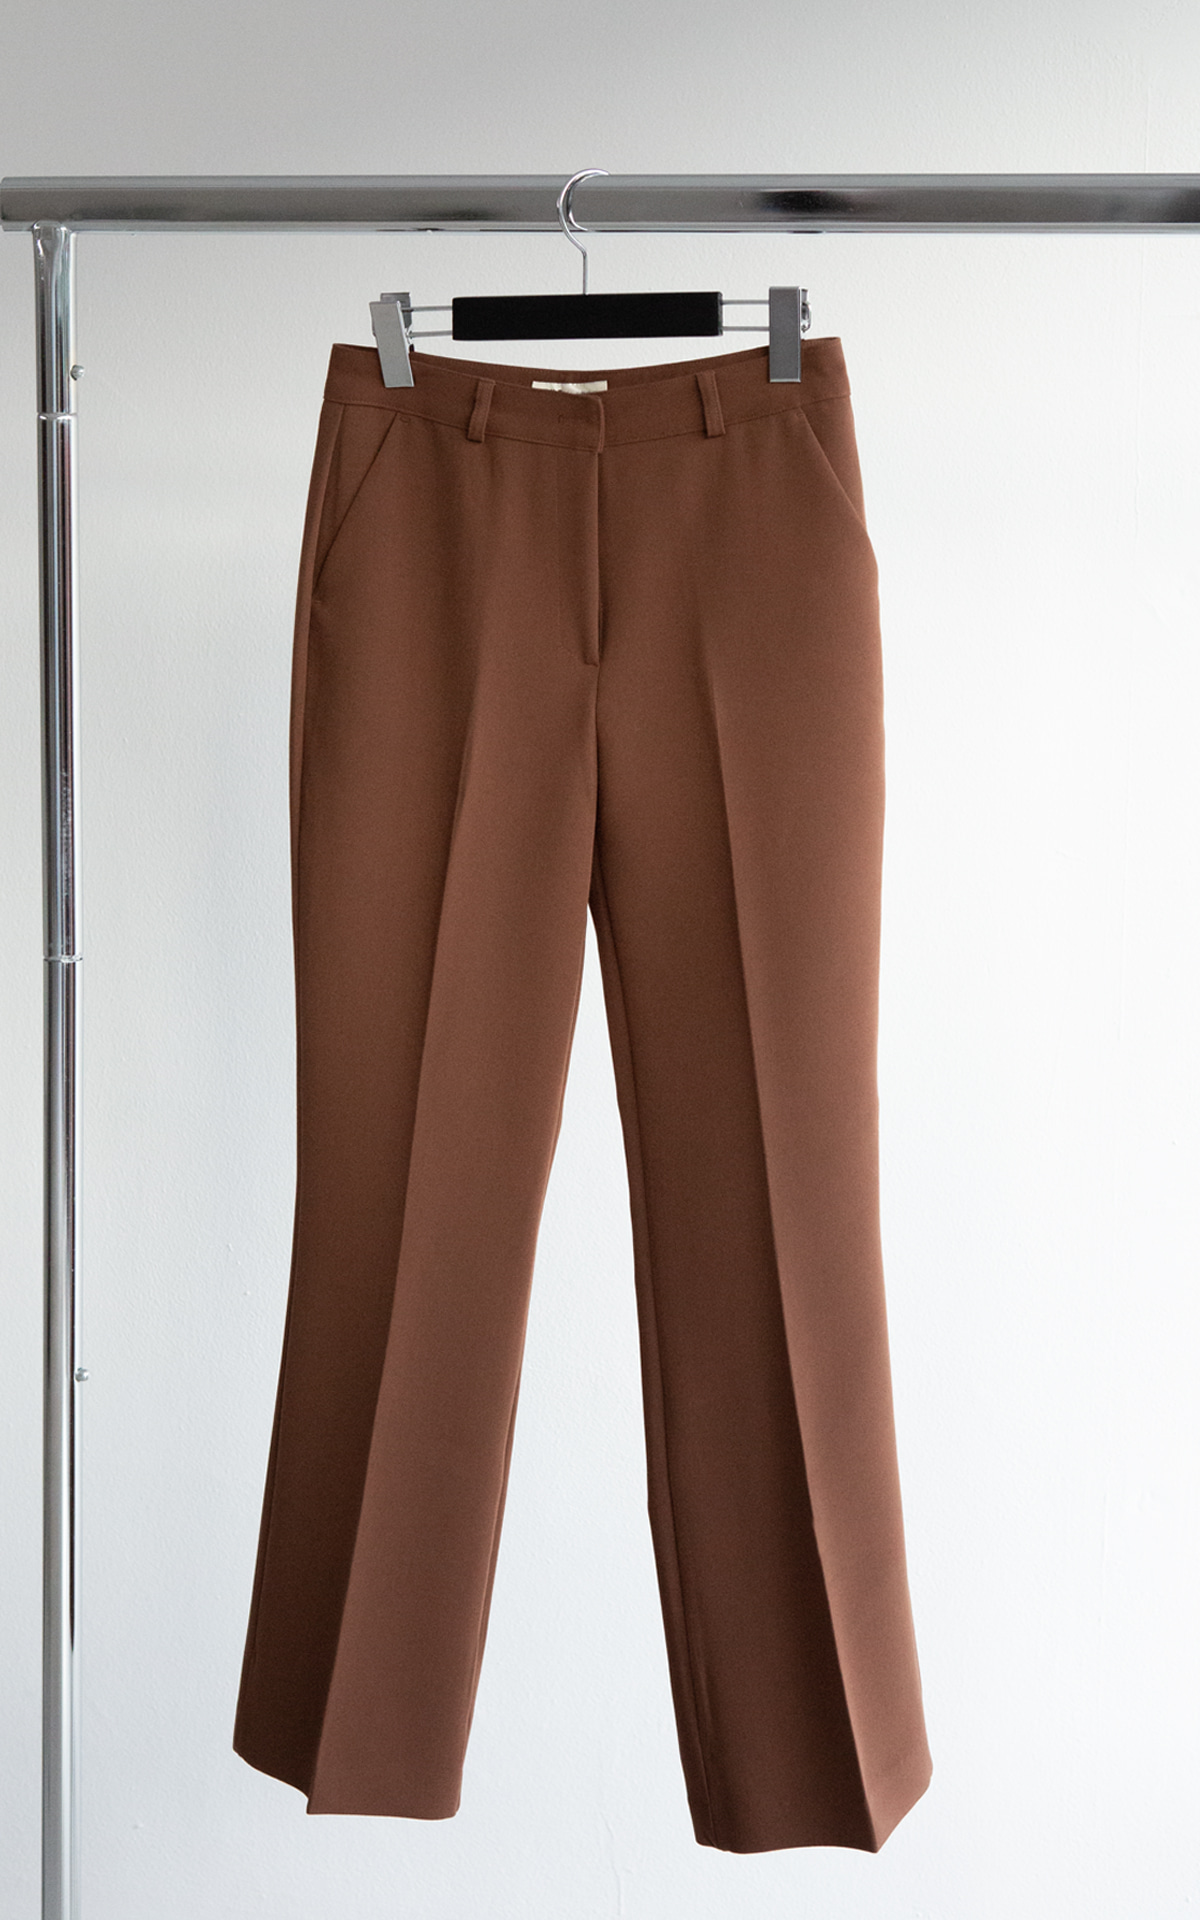 Boots-Cut Simple Slacks_Brown